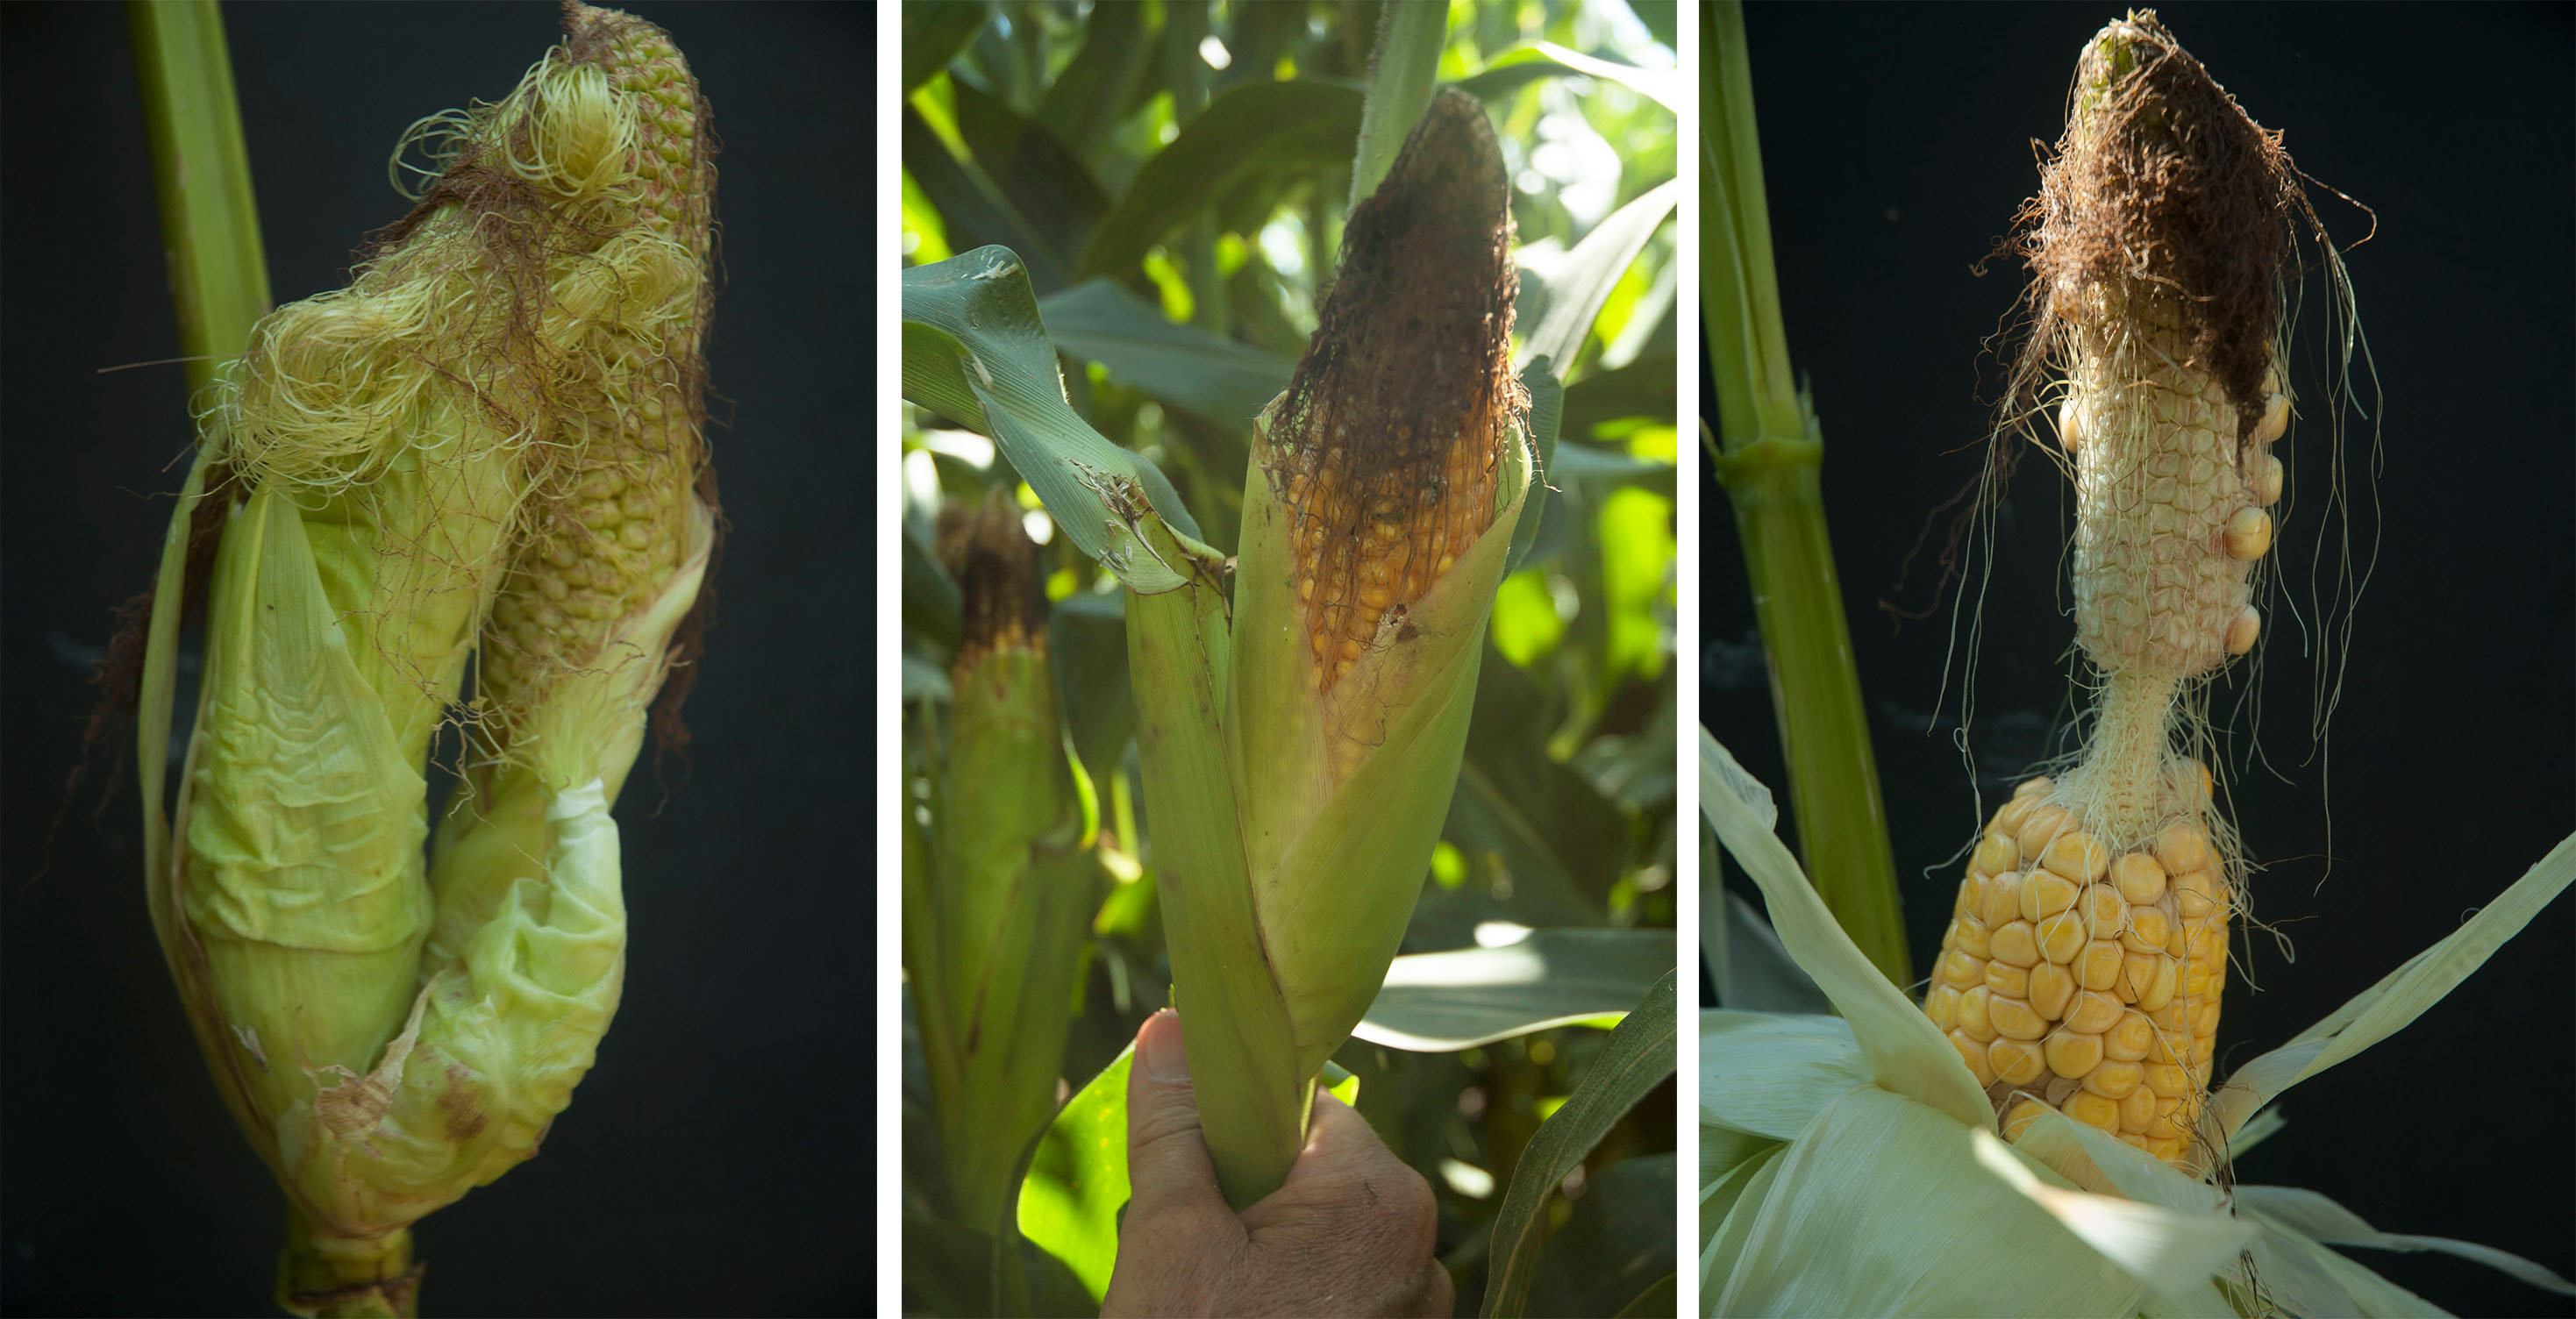 Corn growers from west central to eastern Nebraska are reporting ear formation issues, including (from left) multiple ears per node, short husks on normal length ears, and dumbbell-shaped ears. (Photos by Roger Elmore)